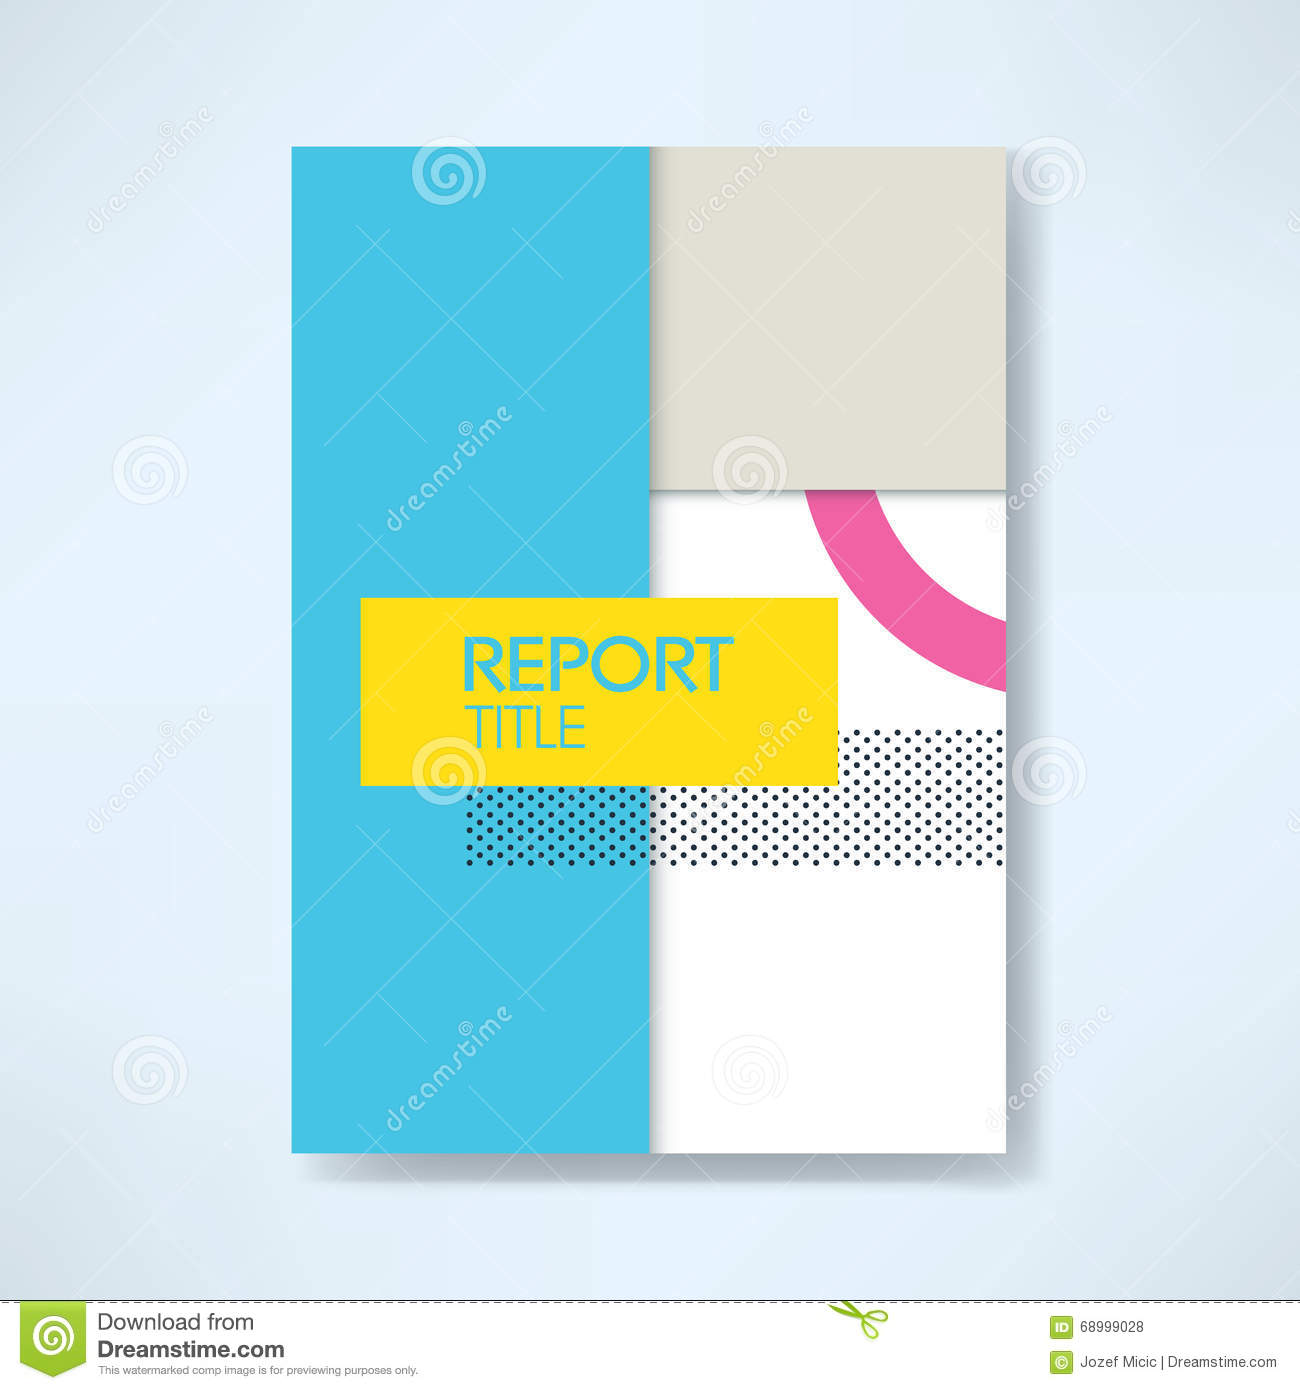 Annual Business Report Cover Template With Modern Material Design – Free Report Cover Templates